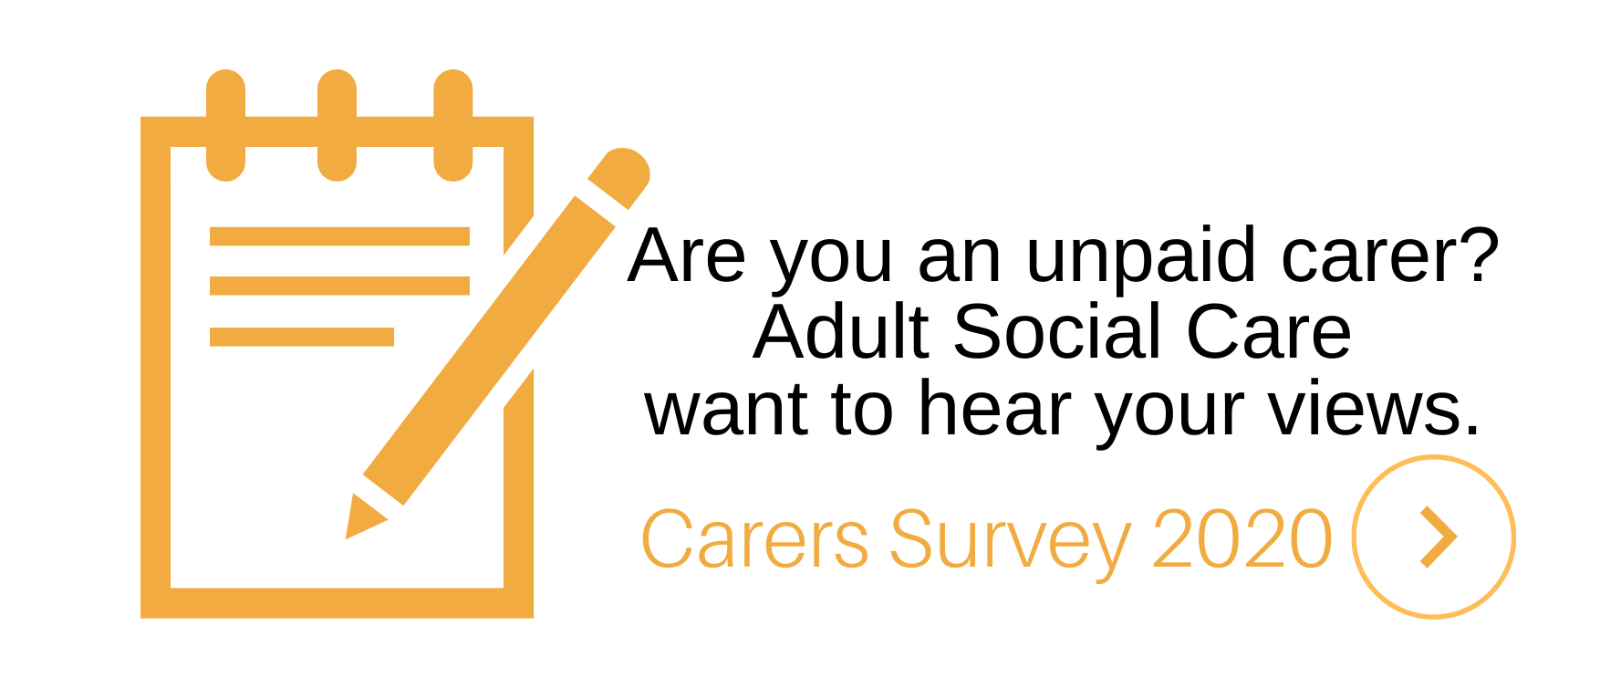 Are you an unpaid carer? Adult social care want to hear your views. Click here for the 2020 carers survey.